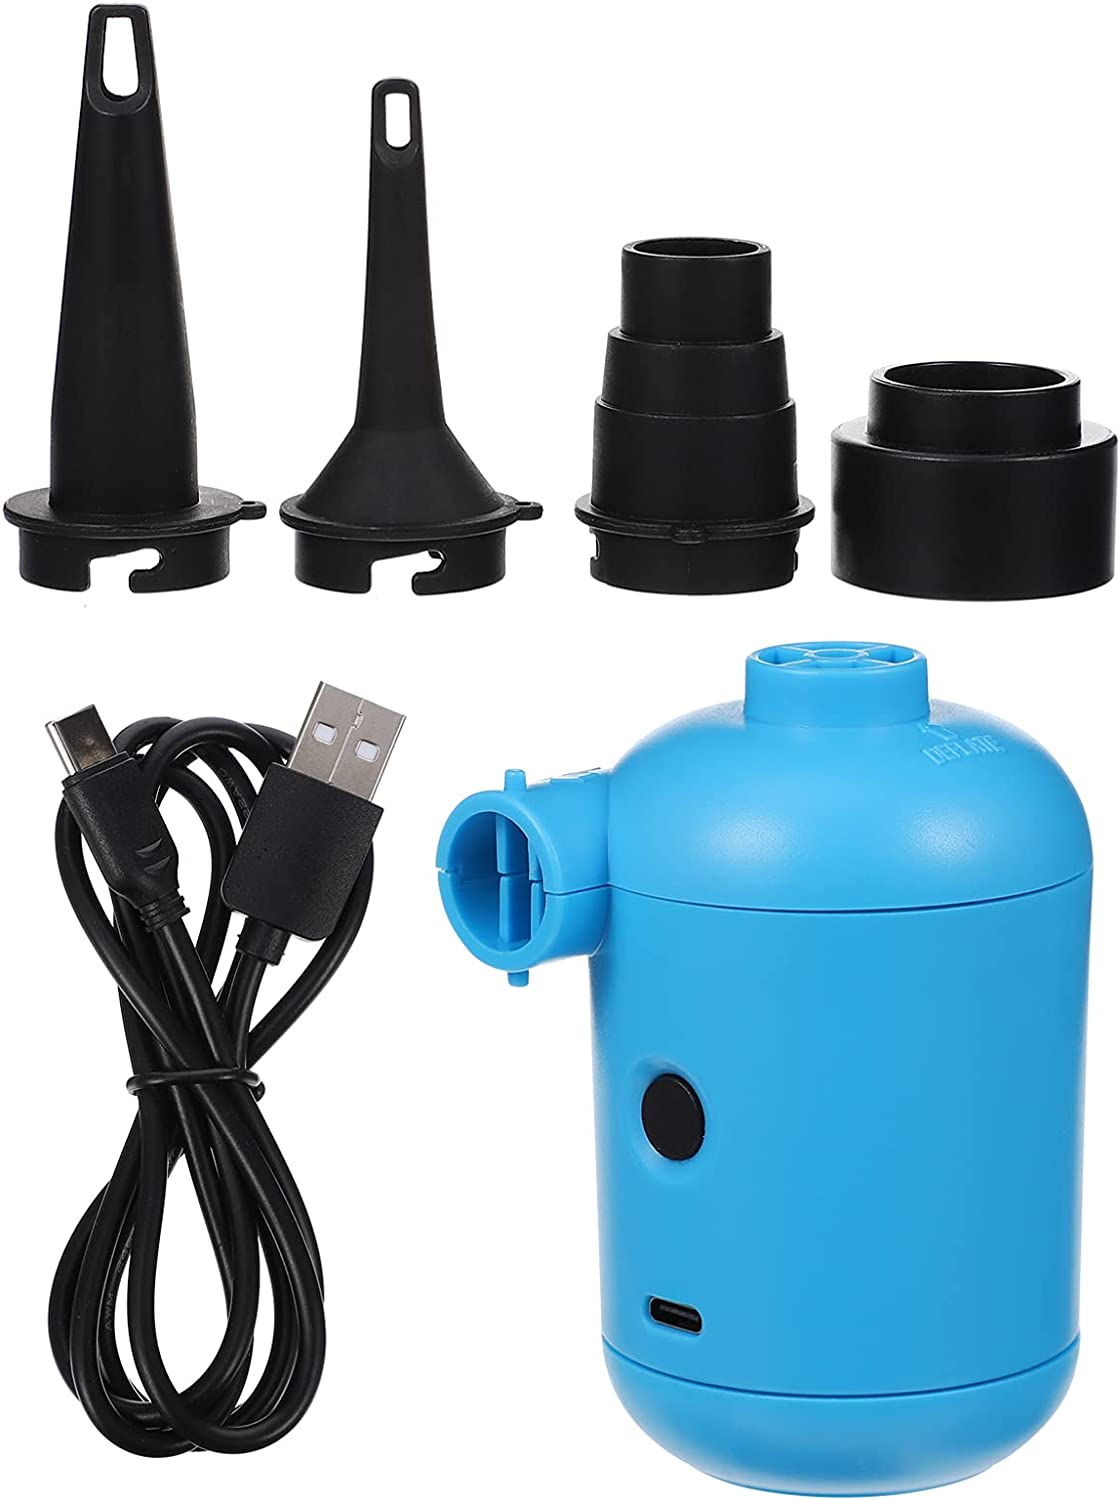 WINOMO Electric Air Pump Quick Fill Inflator Rechargeab Milwaukee Mall USB We OFFer at cheap prices